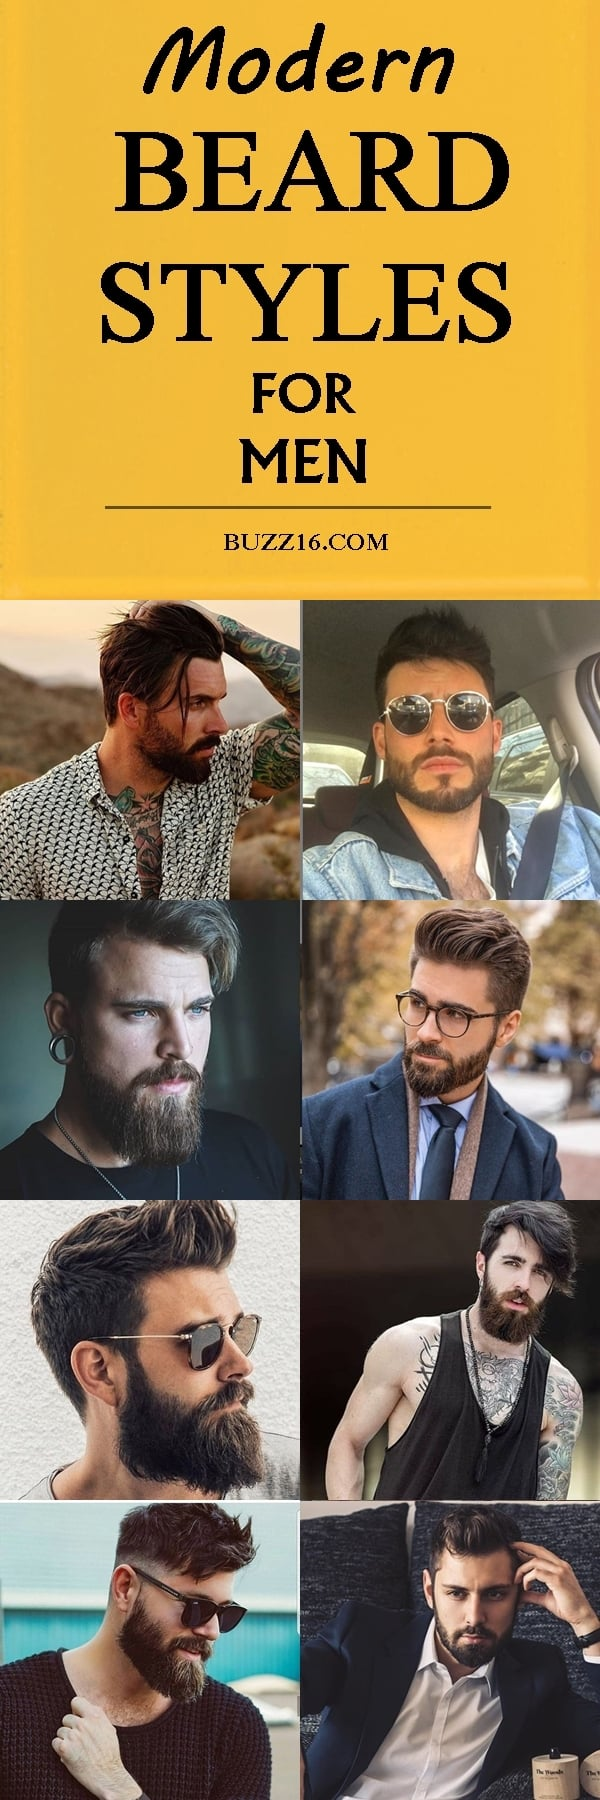 40 Latest Modern Beard Styles For Men